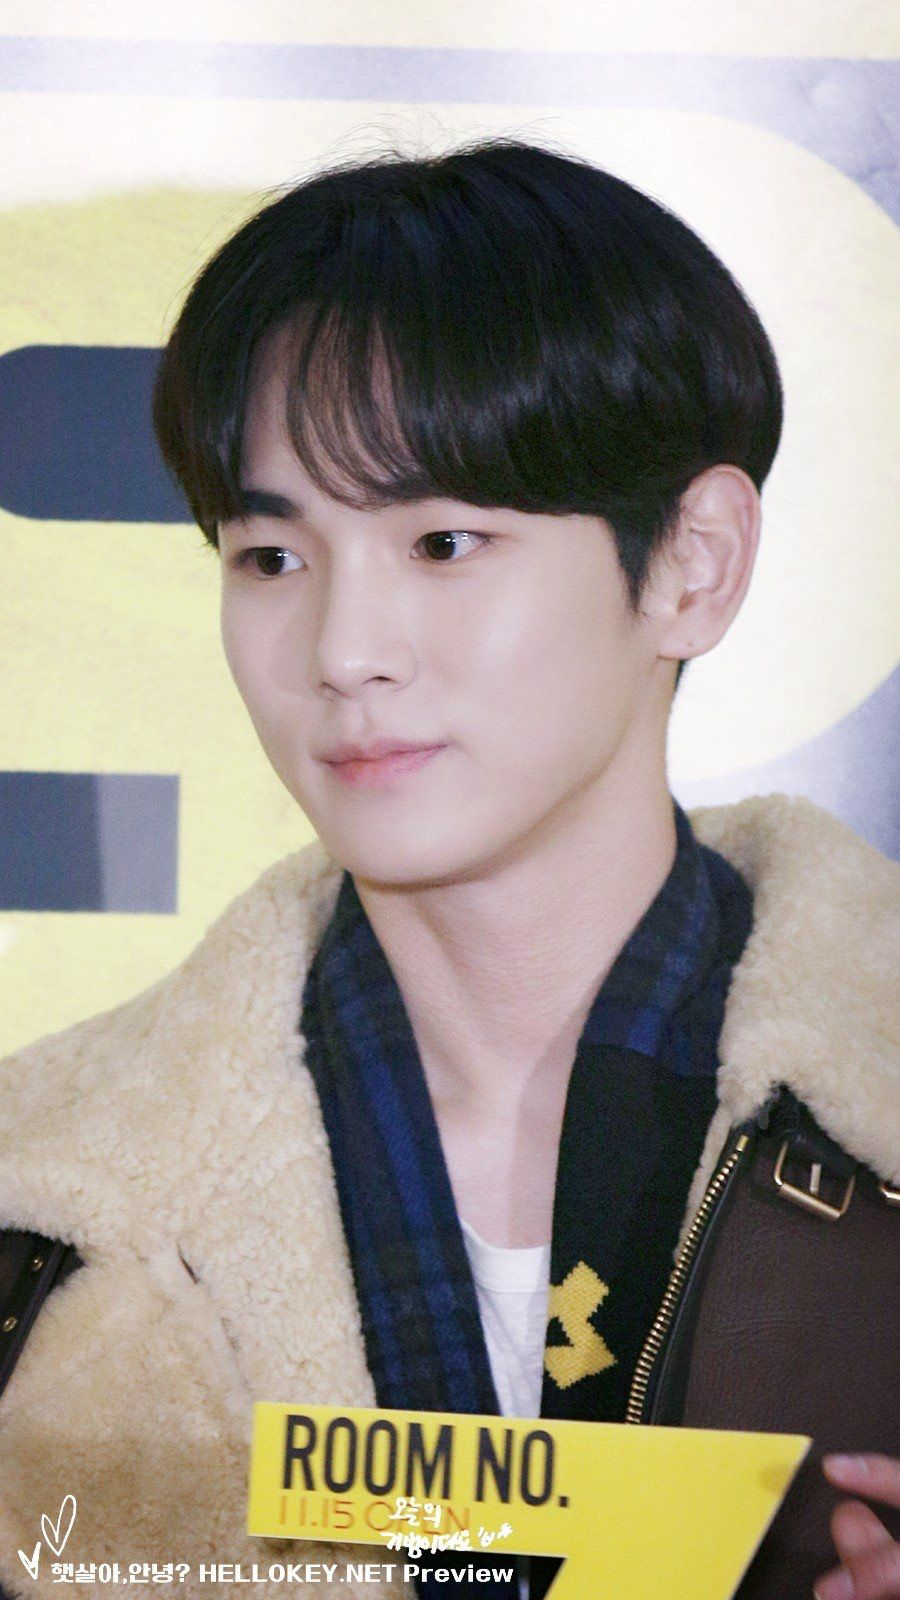 Pin by sofia on key pinterest key kim kibum and shinee